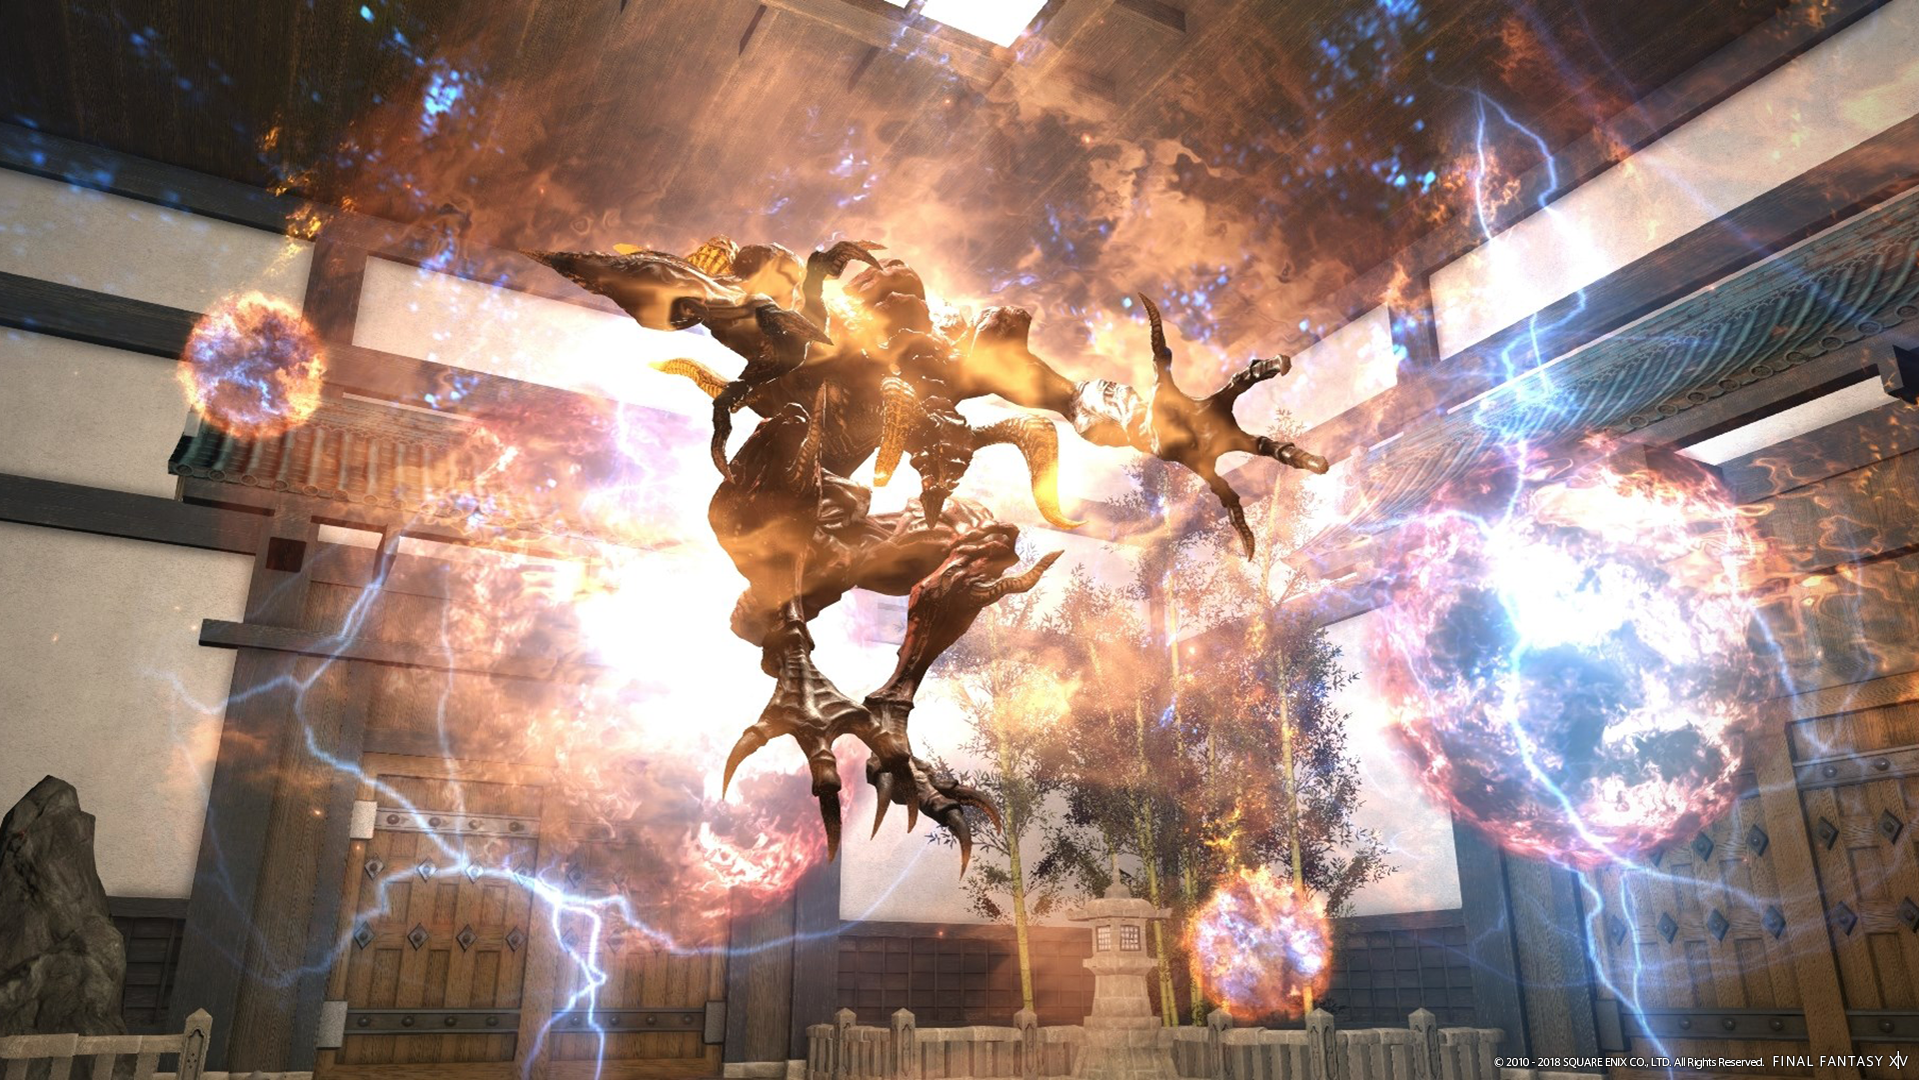 Final Fantasy Xiv Opens The Doors To Heaven On High And